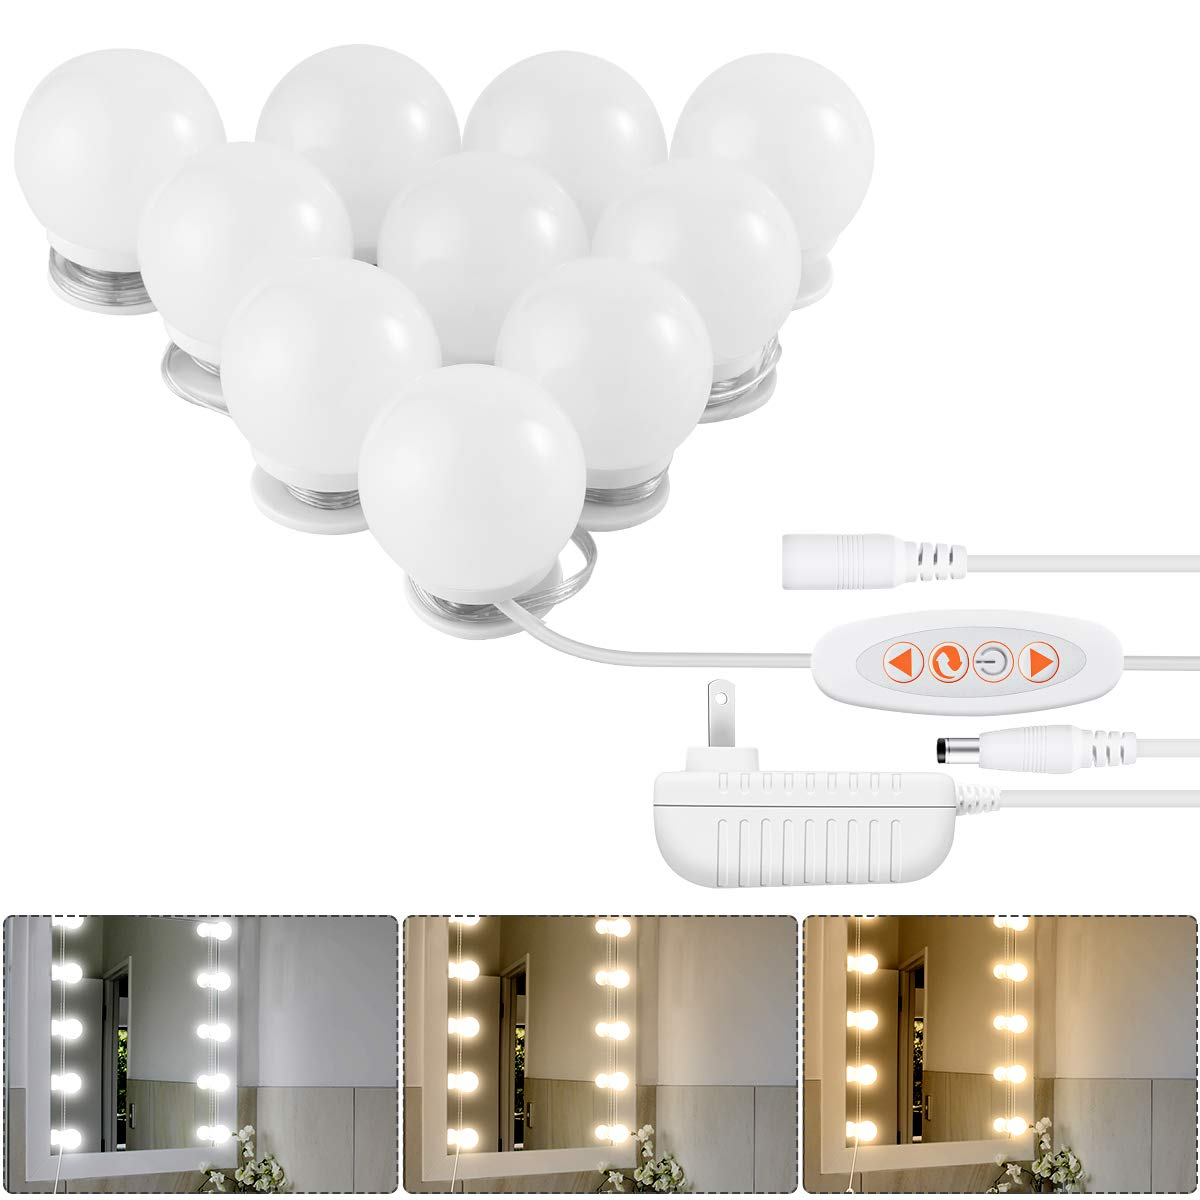 LED Vanity Mirror Lights Kit, Upgraded Hollywood Style Vanity Lights Makeup Lighting Fixture with 3 Color Lighting Modes, 10 Dimmable Light Bulbs and Smart Dimmer for Vanity Table Set in Dressing Room